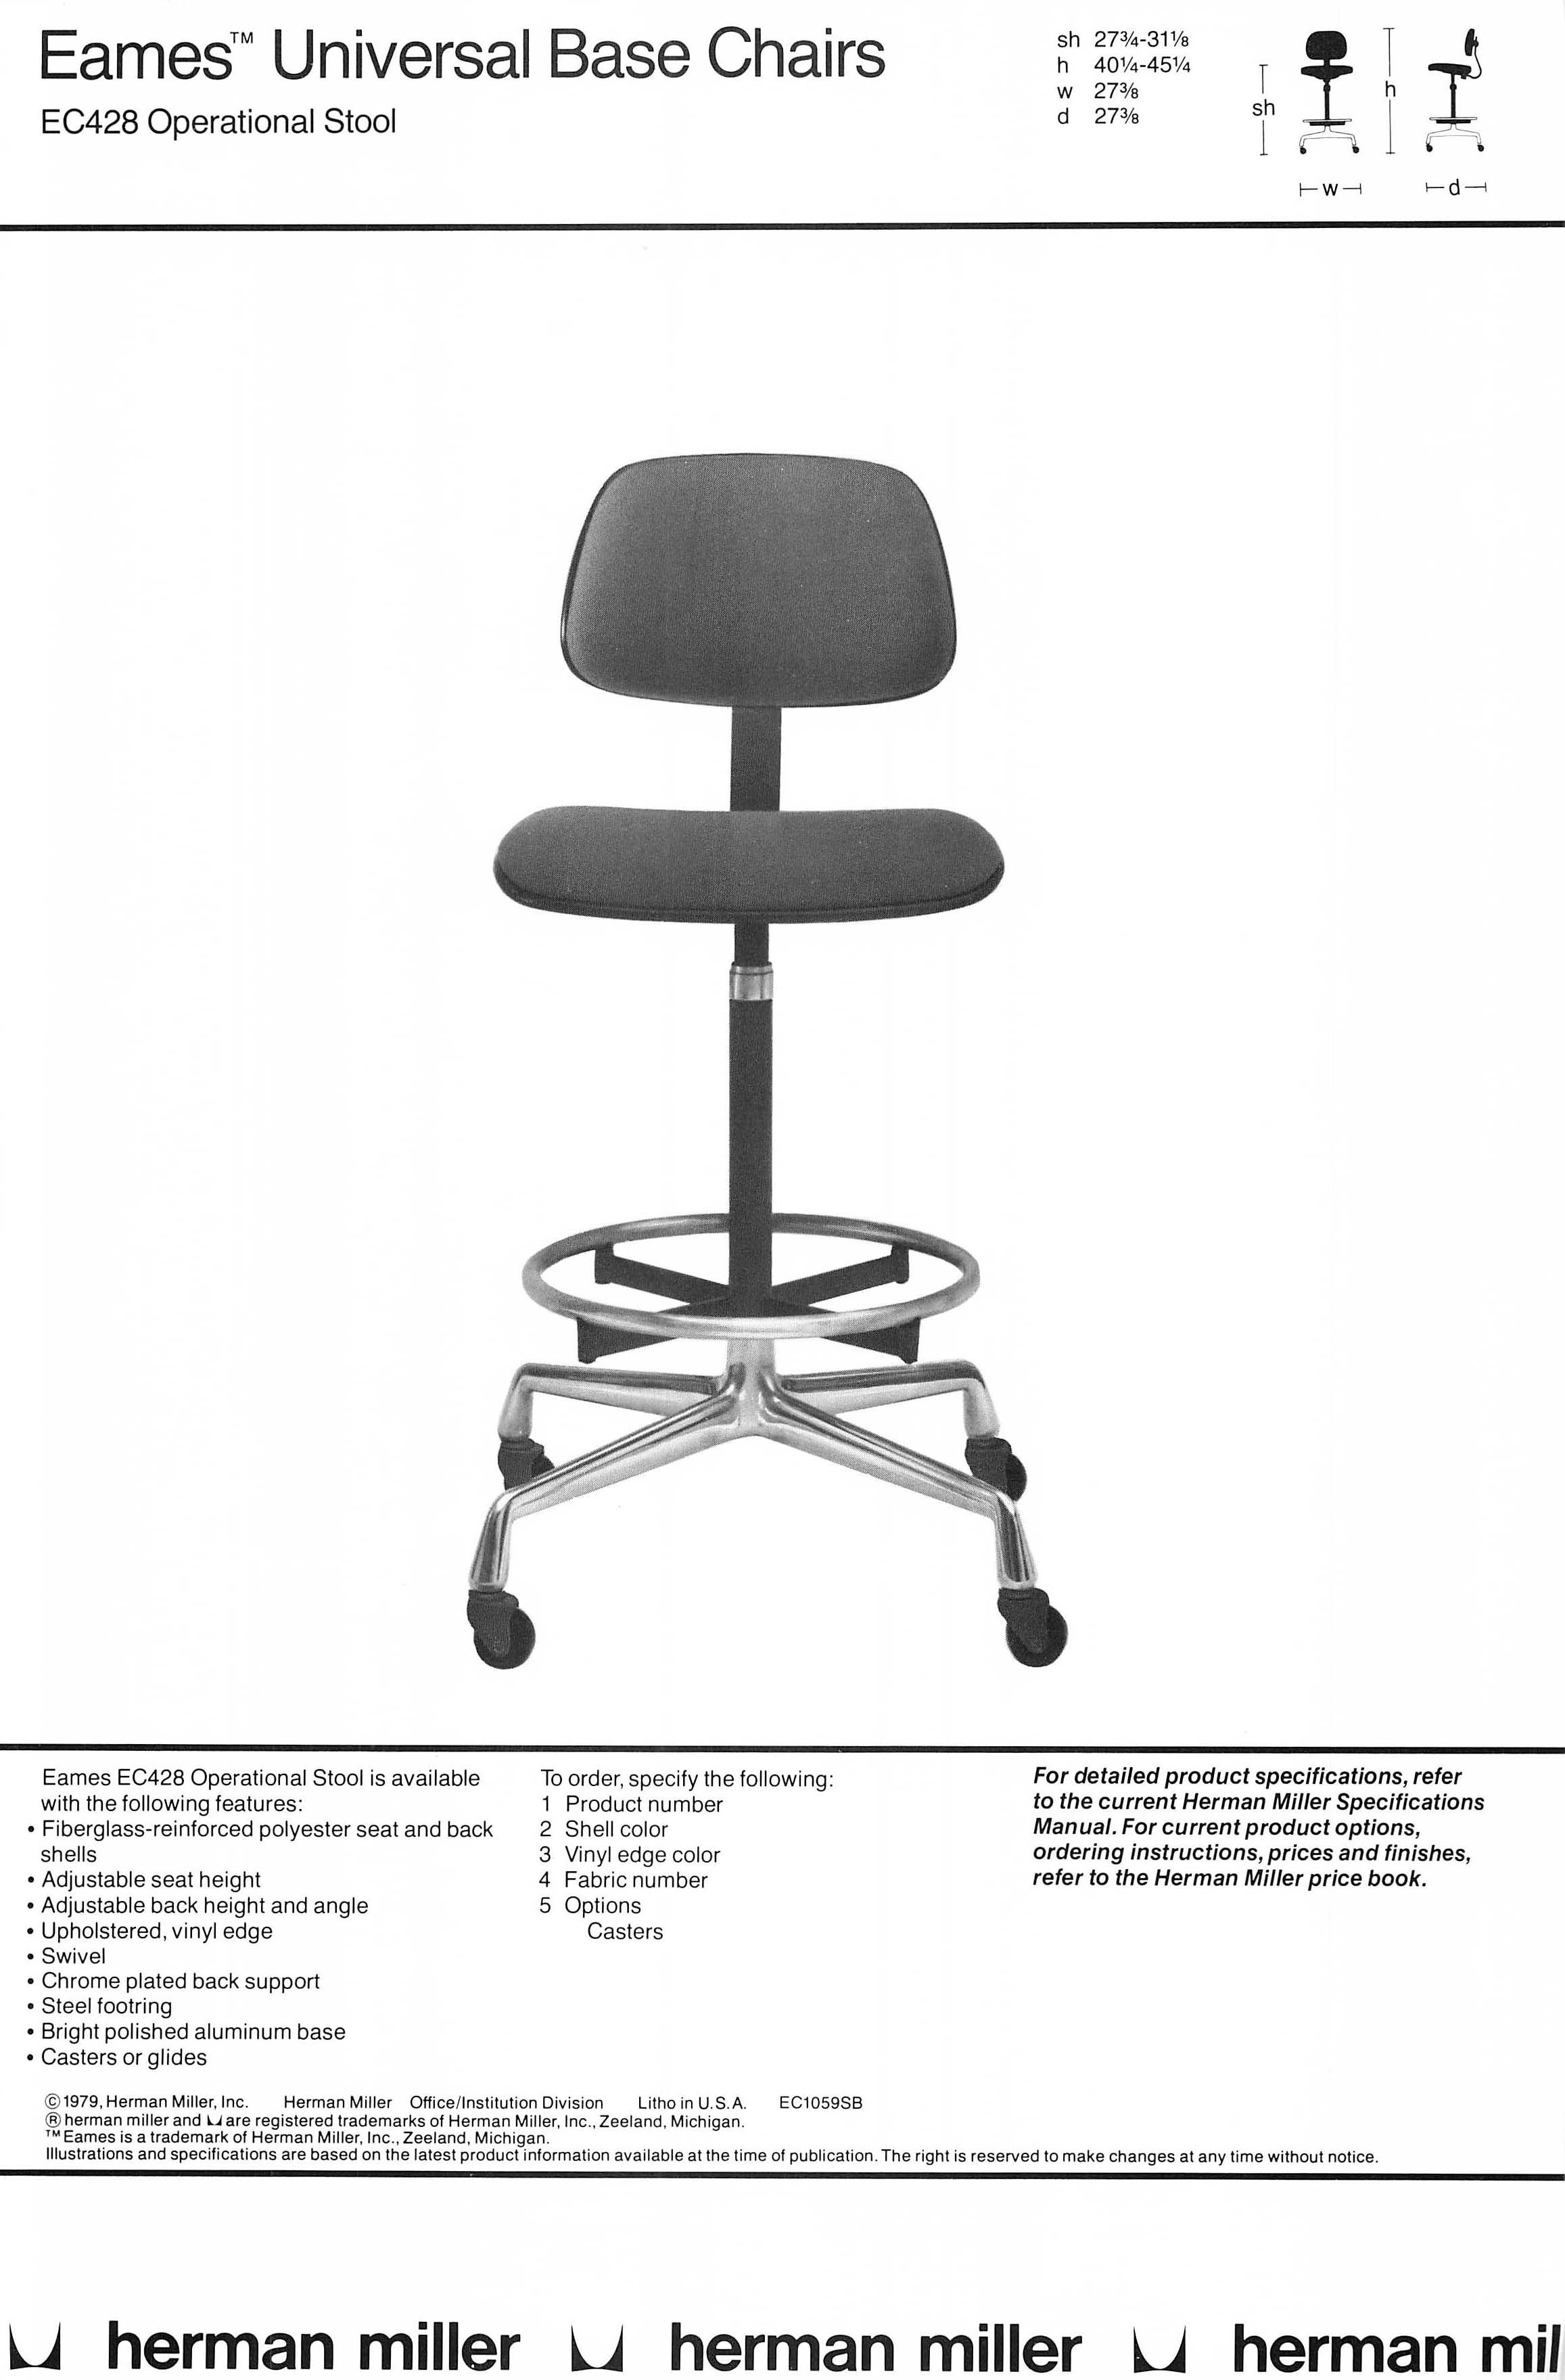 Swivel Chair Operations Rental Prices Eames Ec428 Operational Stool As Illustrated In A 1979 Hermanmiller Catalog